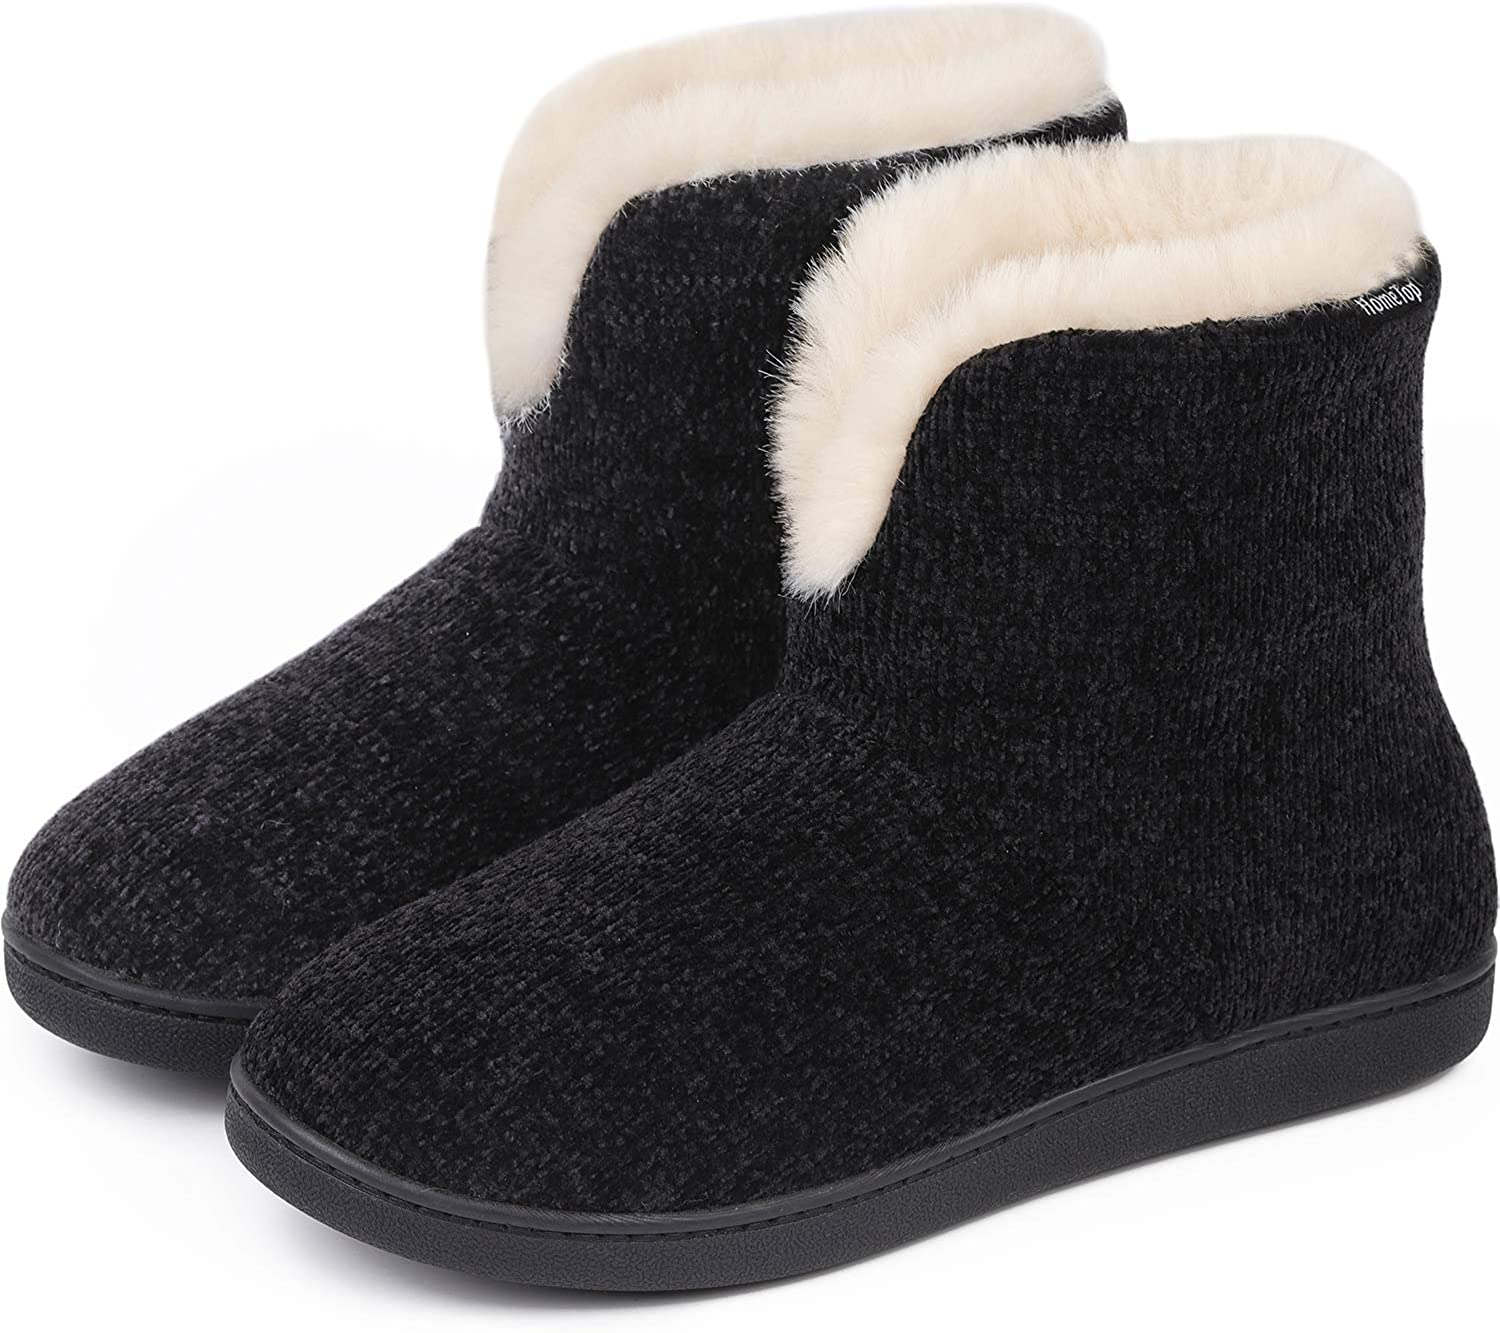 HomeTop Women's Comfy Chenille Knit Memory Foam Bootie Slipper with Fuzzy Plush Lining